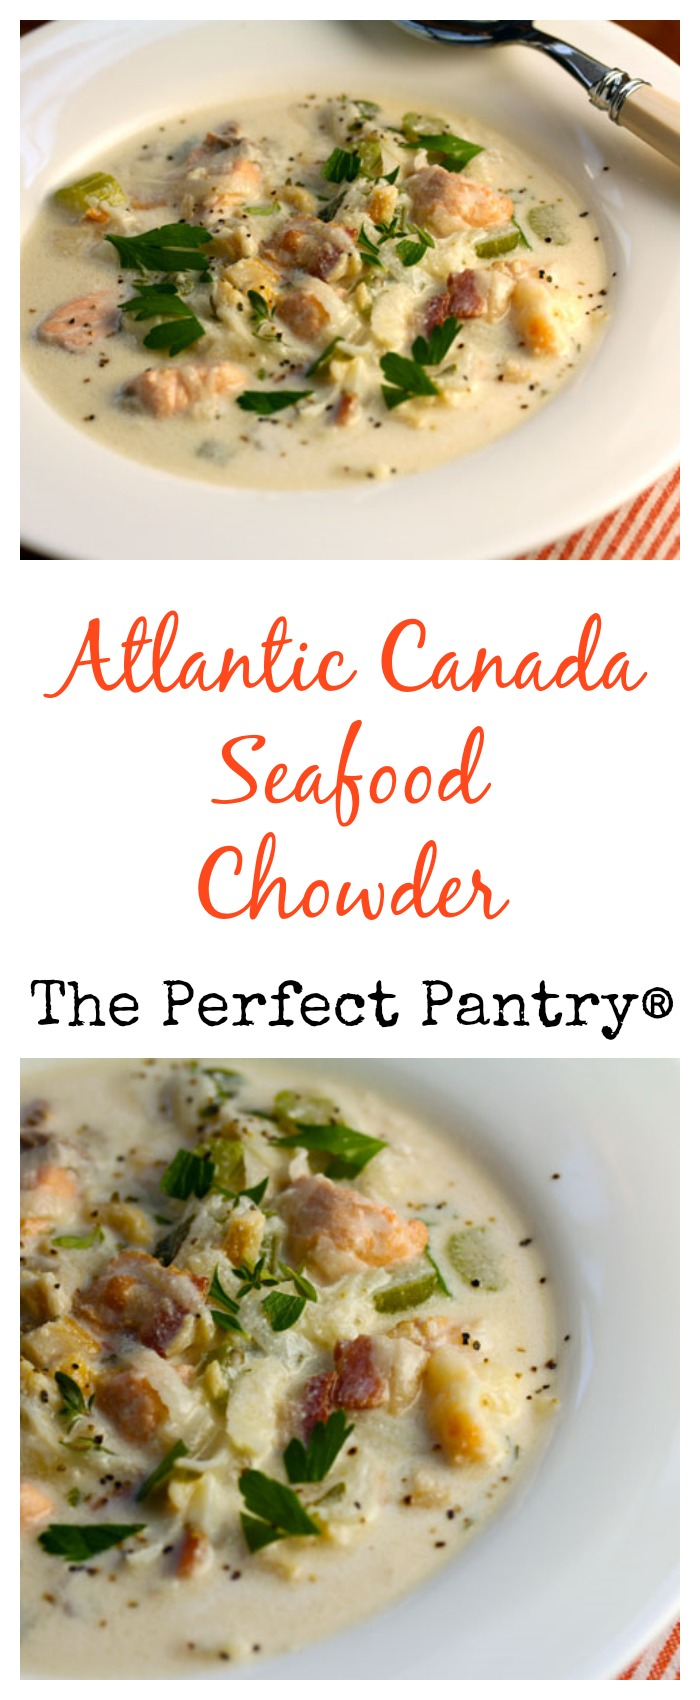 Atlantic Canada seafood chowder: rich, thick, and gluten-free.